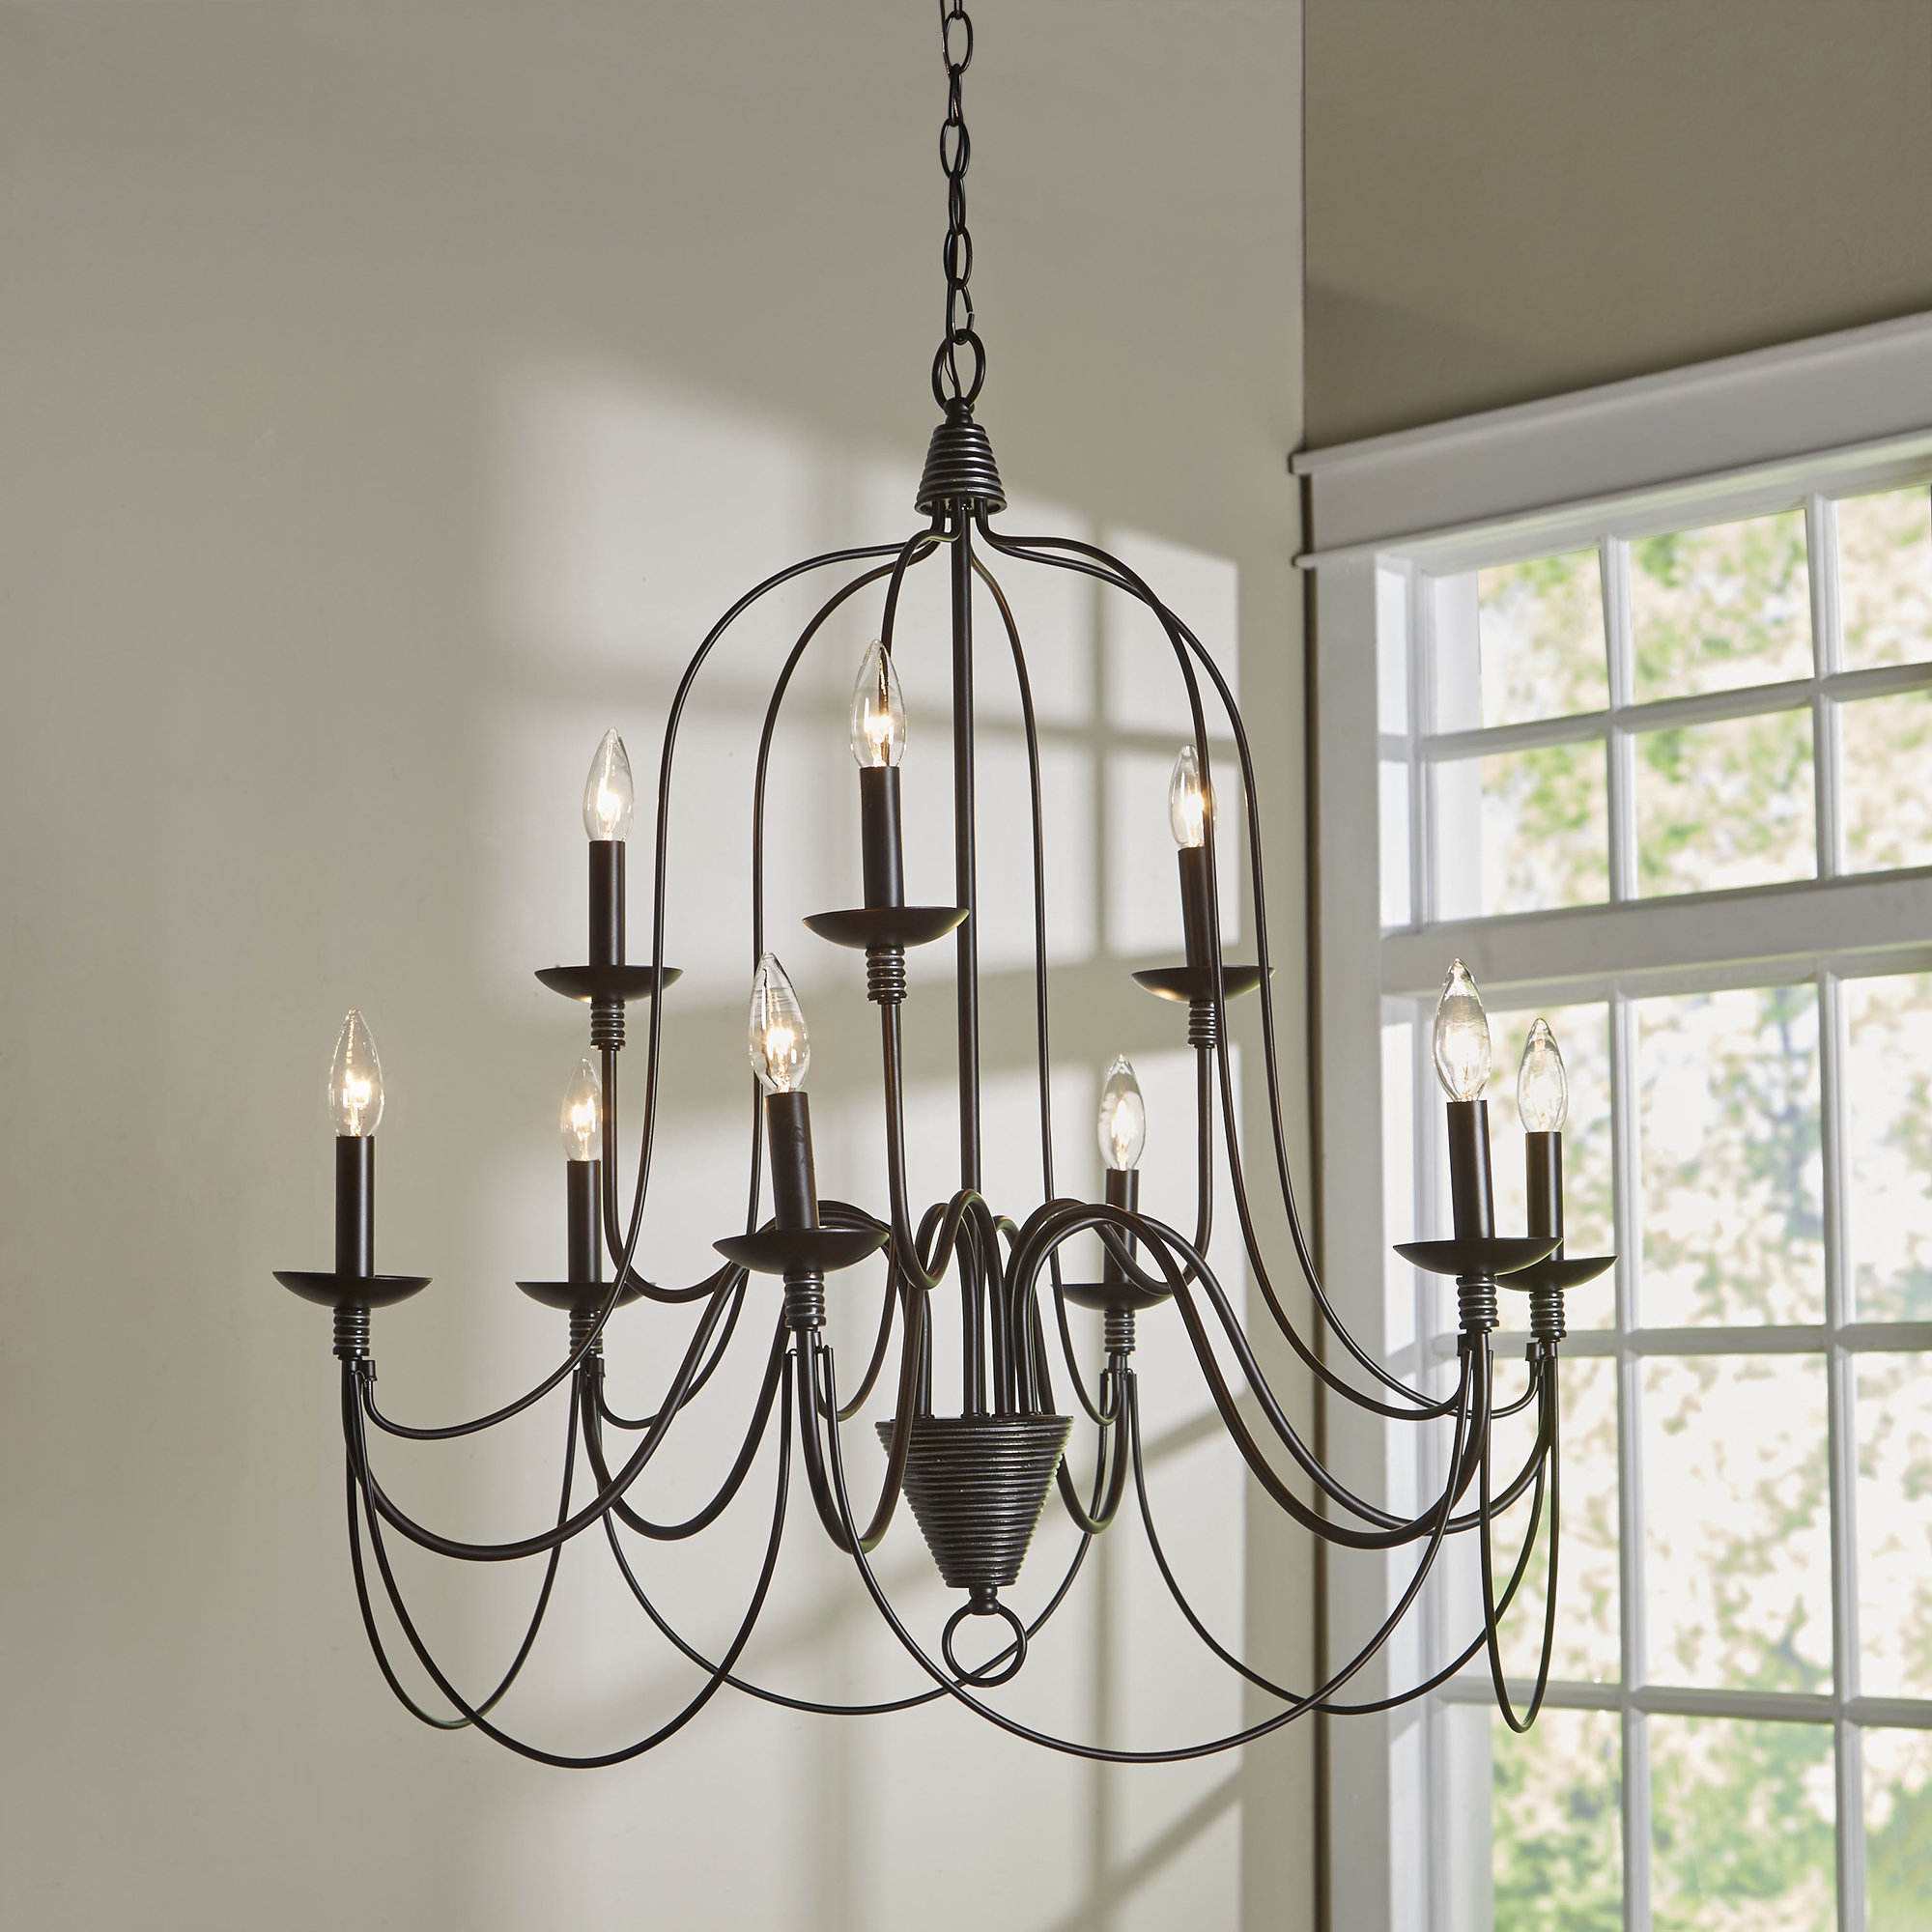 Most Popular Giverny 9 Light Candle Style Chandeliers Throughout Watford 9 Light Candle Style Chandelier (View 16 of 25)